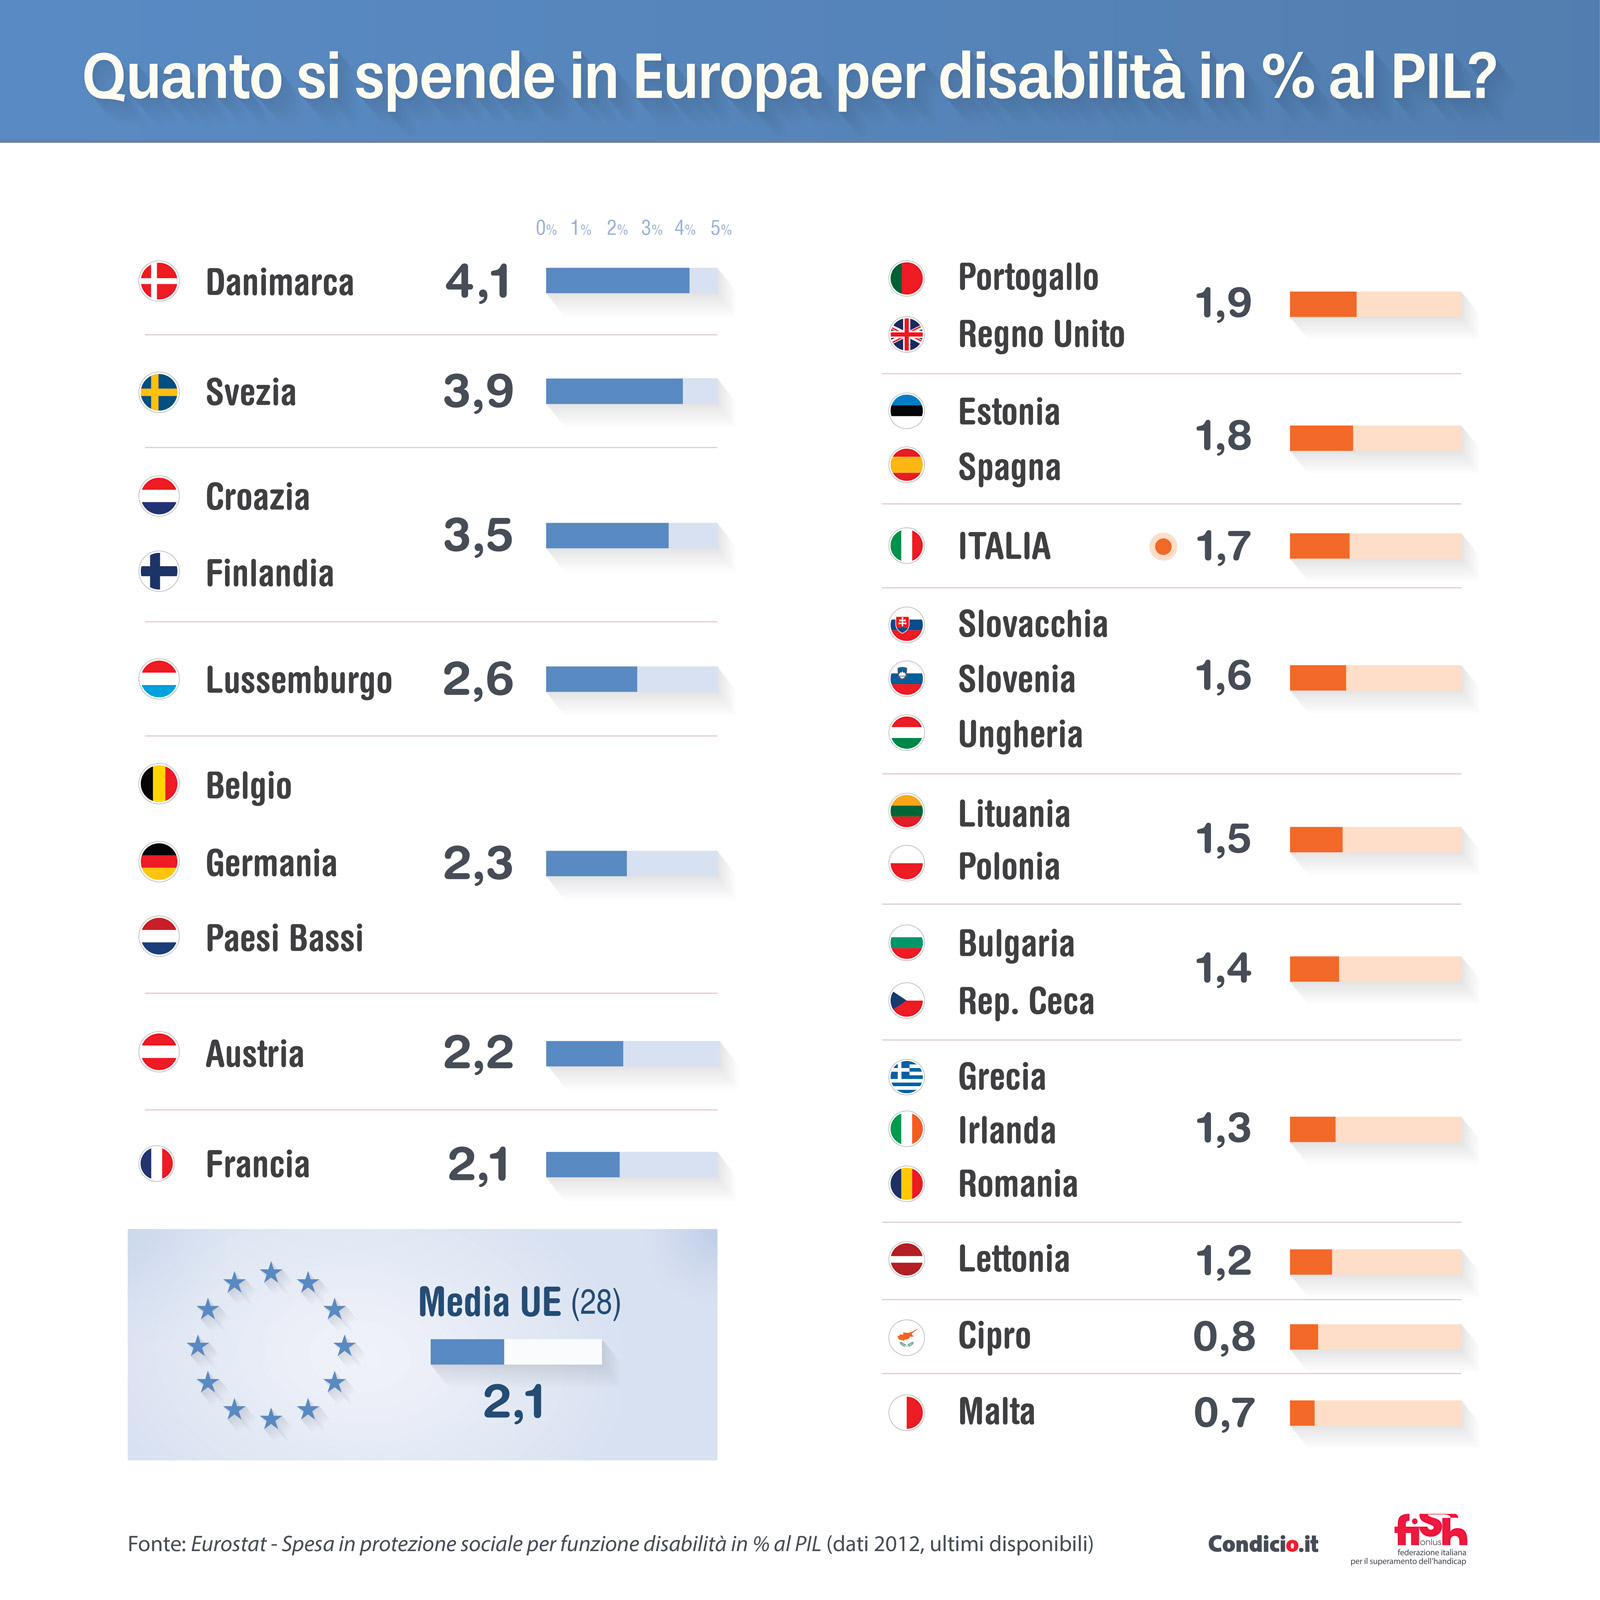 Quanto si spende in Europa per disabilità in % al PIL?